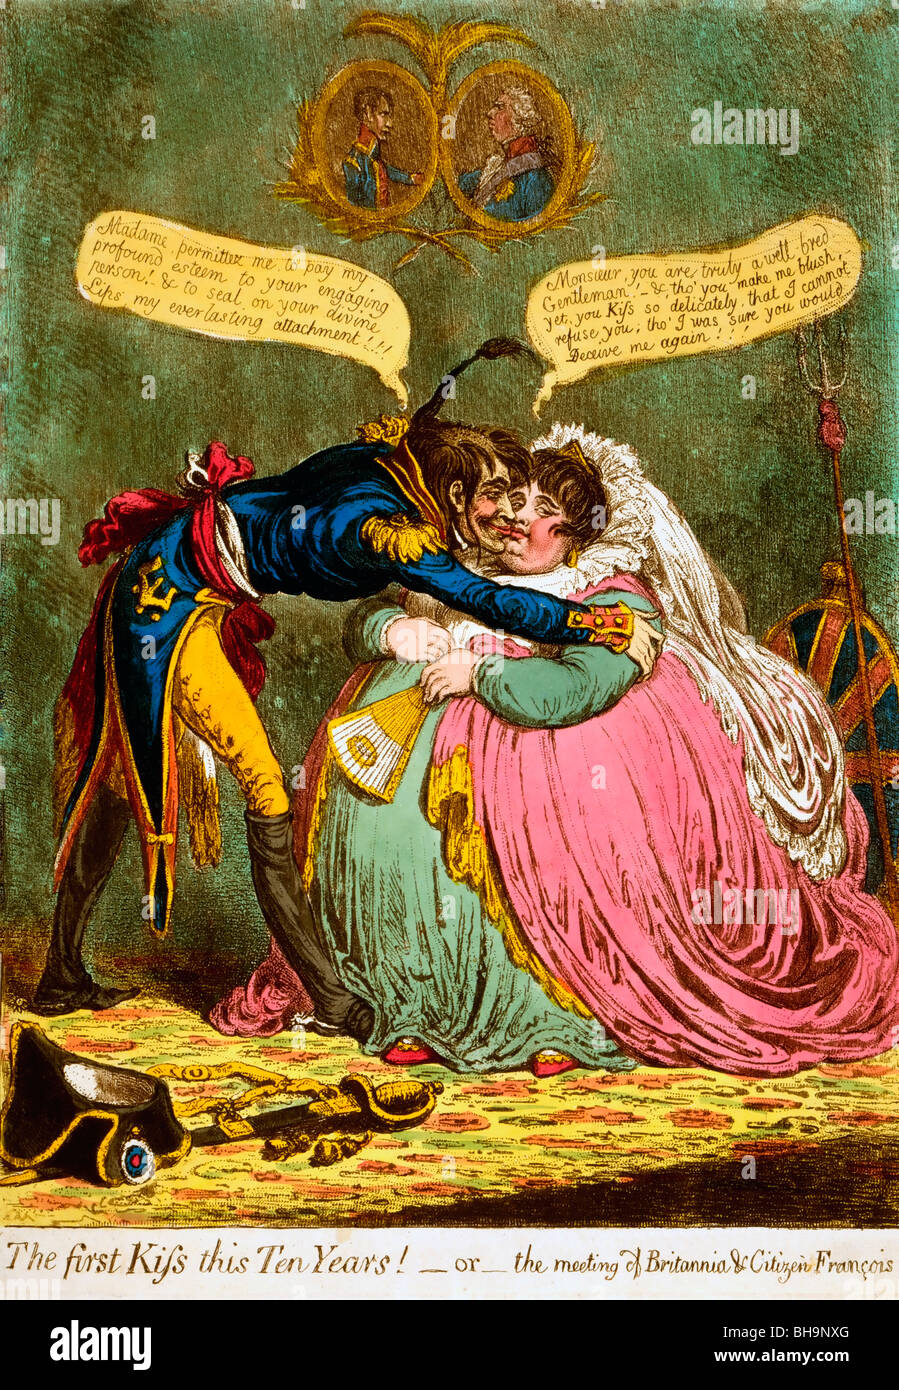 The first Kiss this Ten Years! - or - the meeting of Britannia & Citizen Francois, Political Cartoon, 1803 Stock Photo